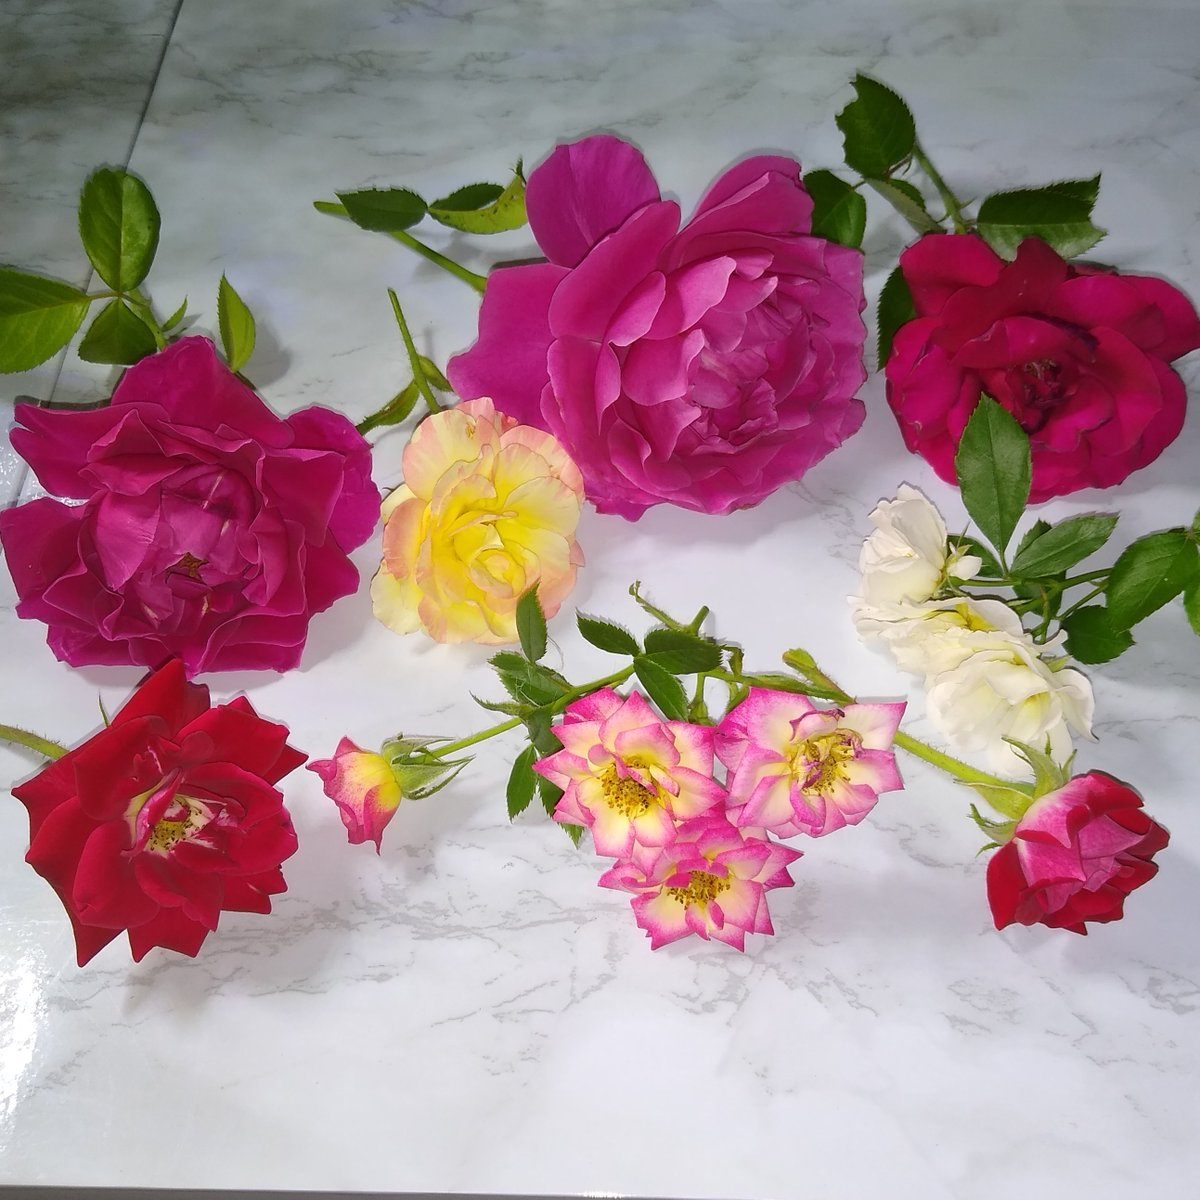 Rose hauls from the rose garden makes all the maintenance worth it. 🌹😍 #roses #flowers #gardening #garden #gardeners #plants